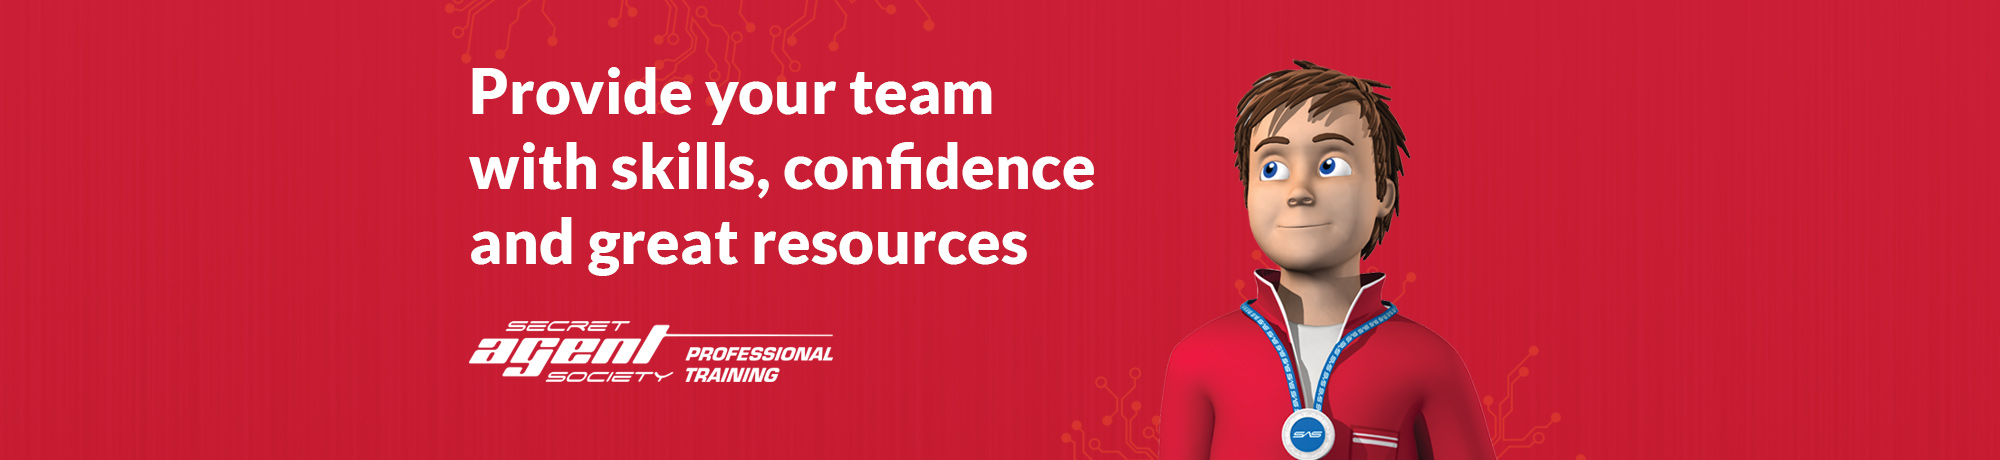 Provide your team with skills, confidence and great resources